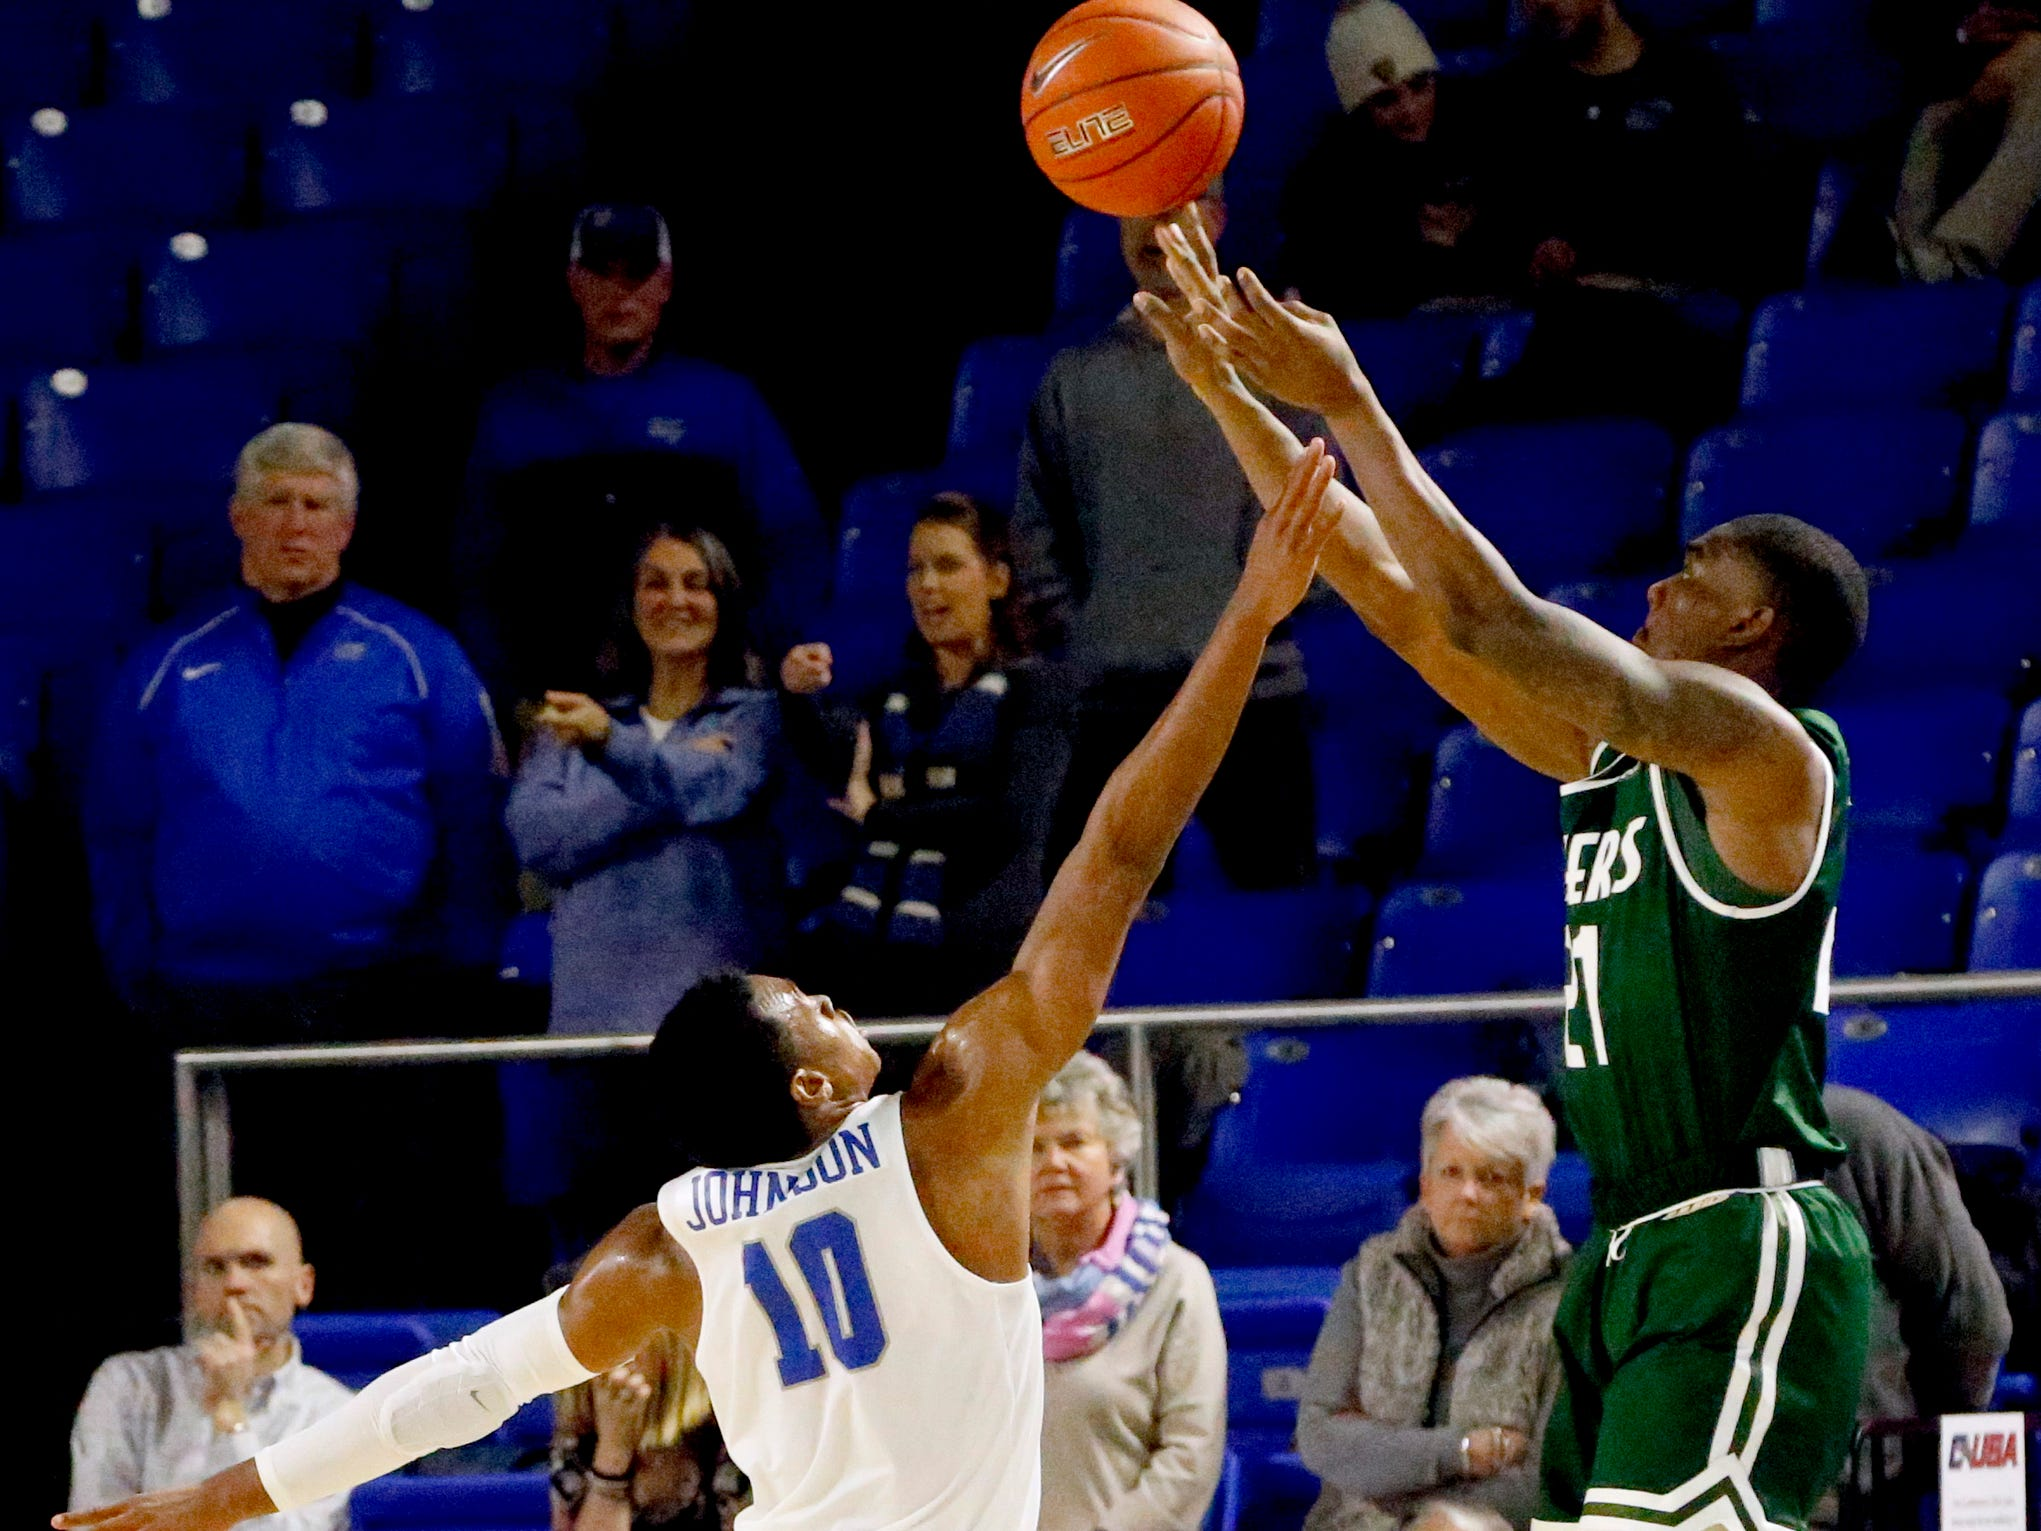 MTSU guard Jayce Johnson (10) guards UAB's guard Jalen Perry (21) as he shoots on Wednesday, Jan. 30, 2019.